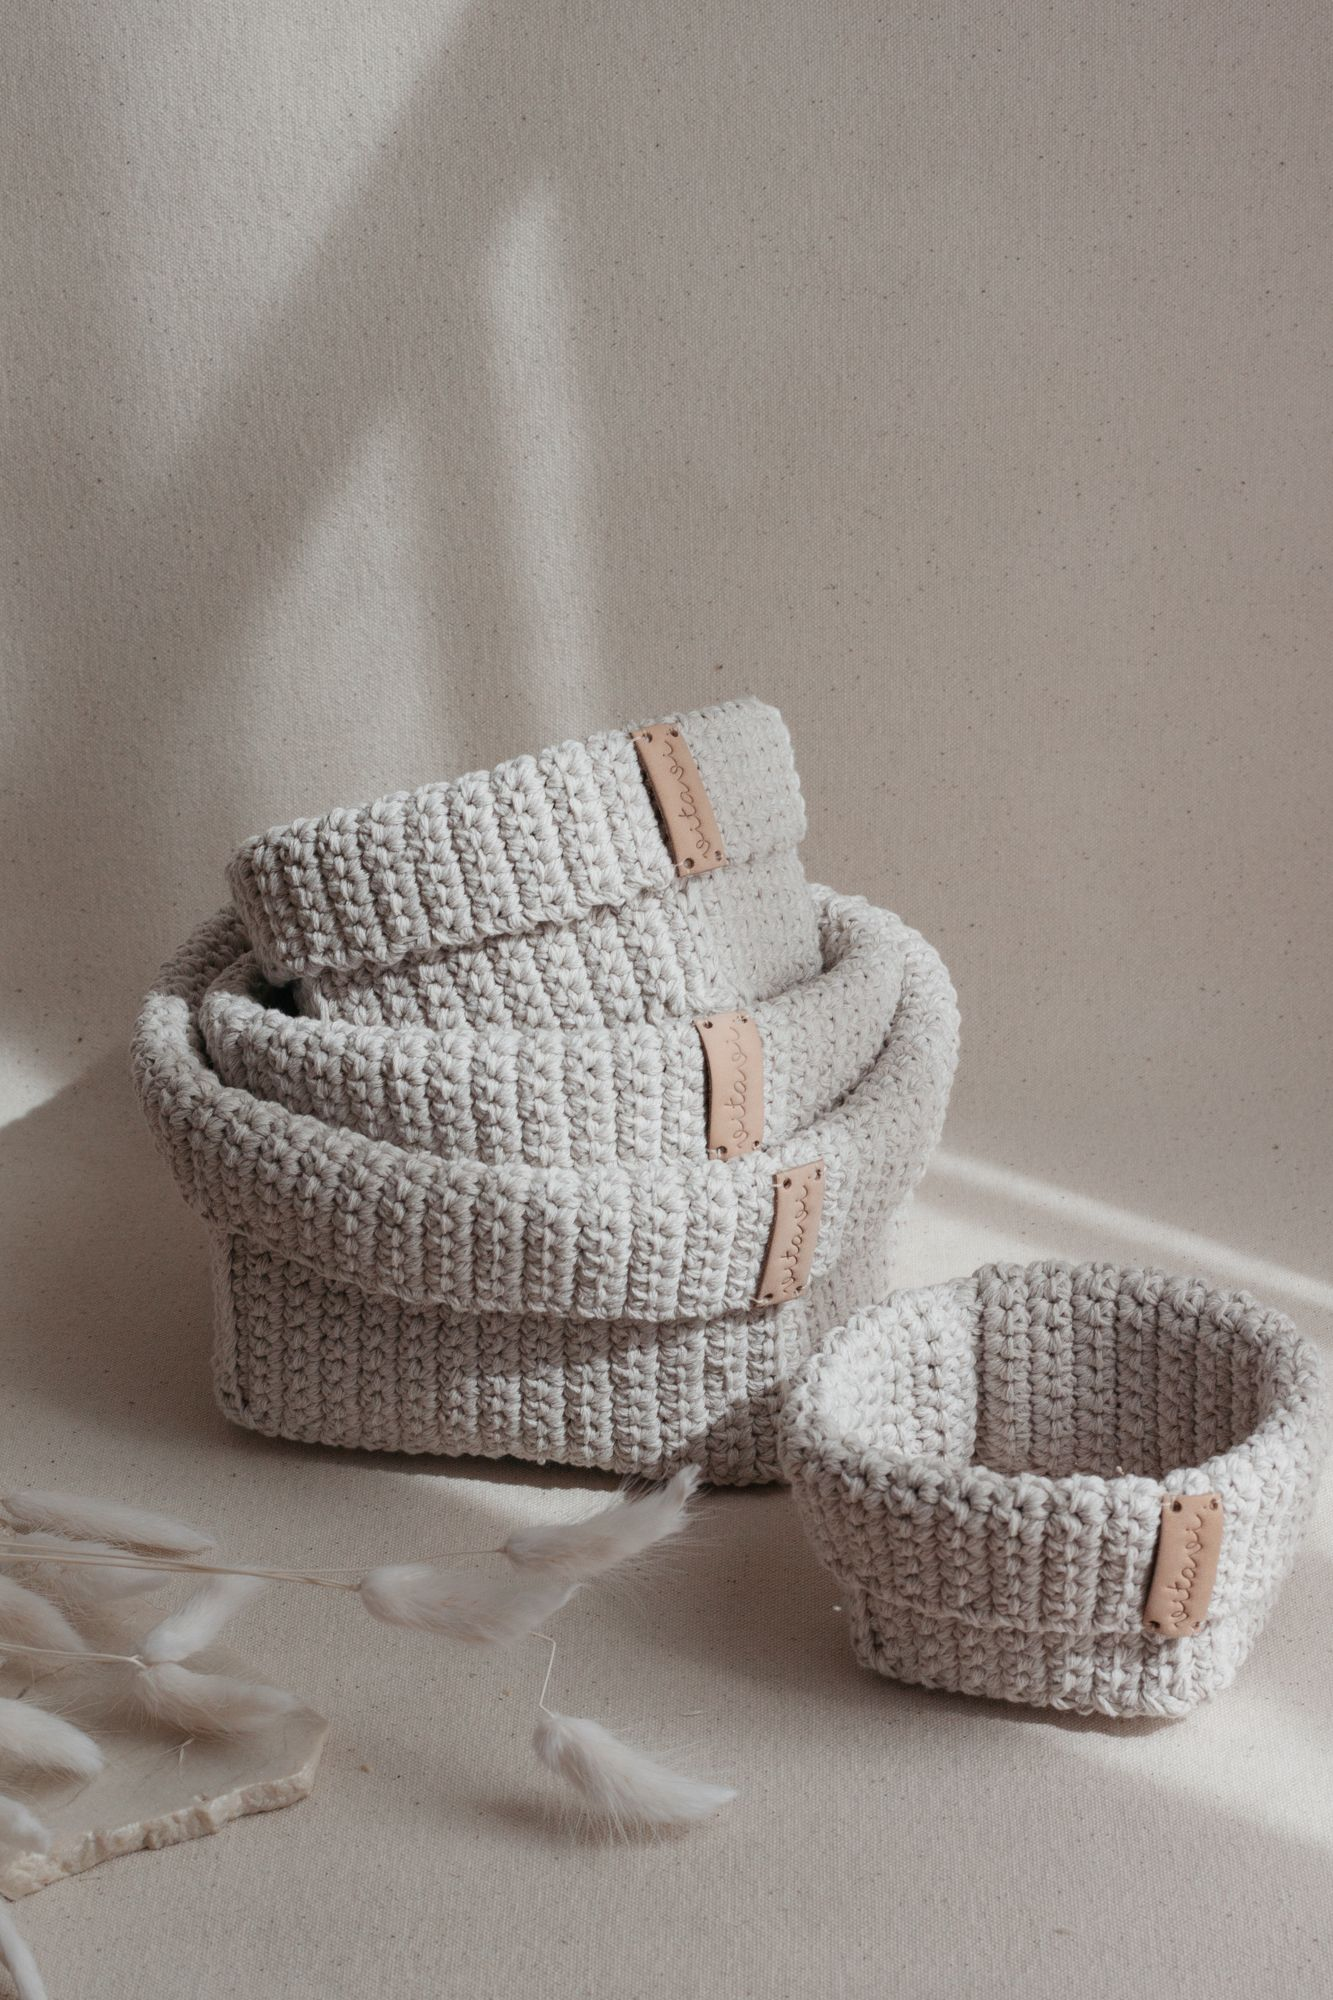 Set of 4 Crochet Baskets - Cream